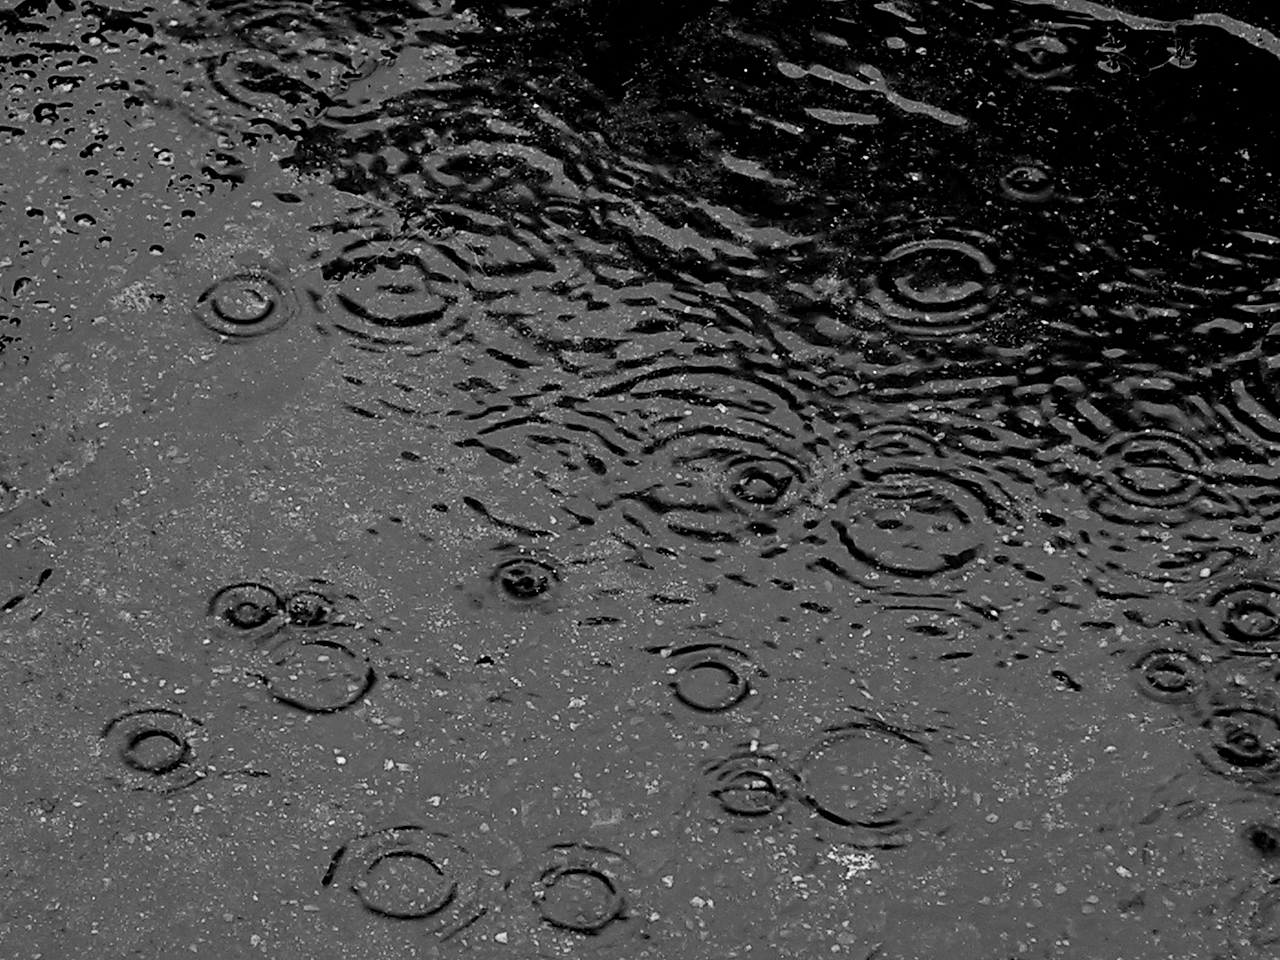 Raindrops falling on water